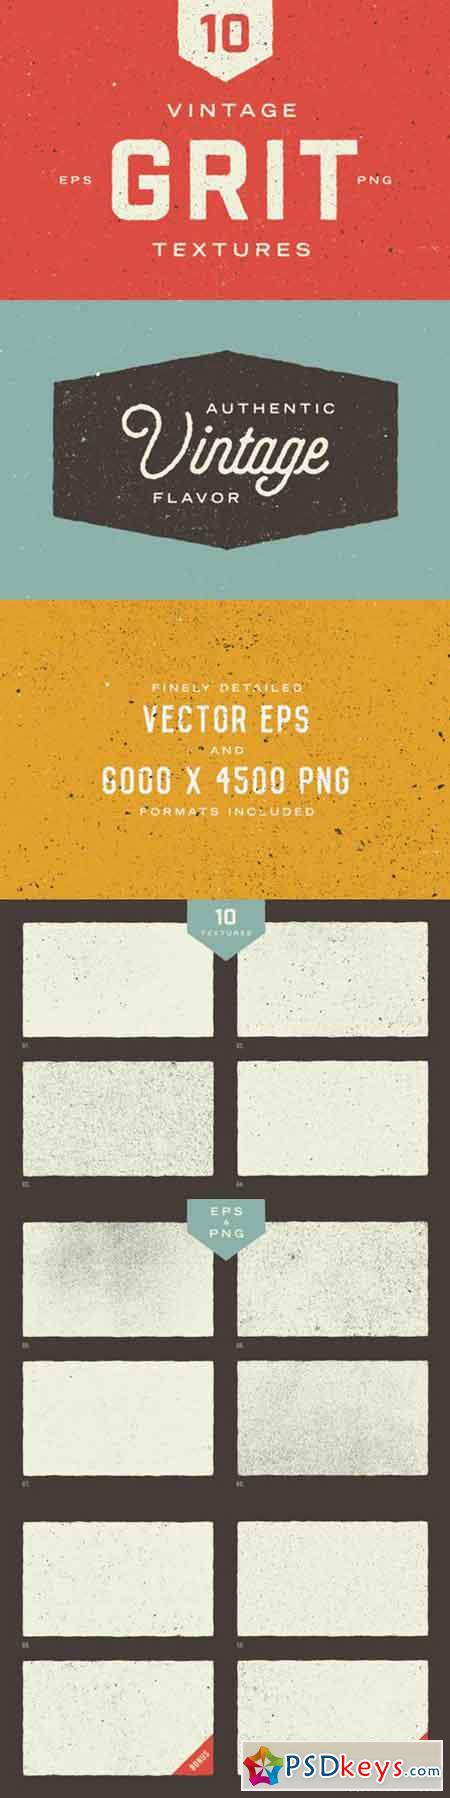 Vintage Grit Textures 324177 » Free Download Photoshop